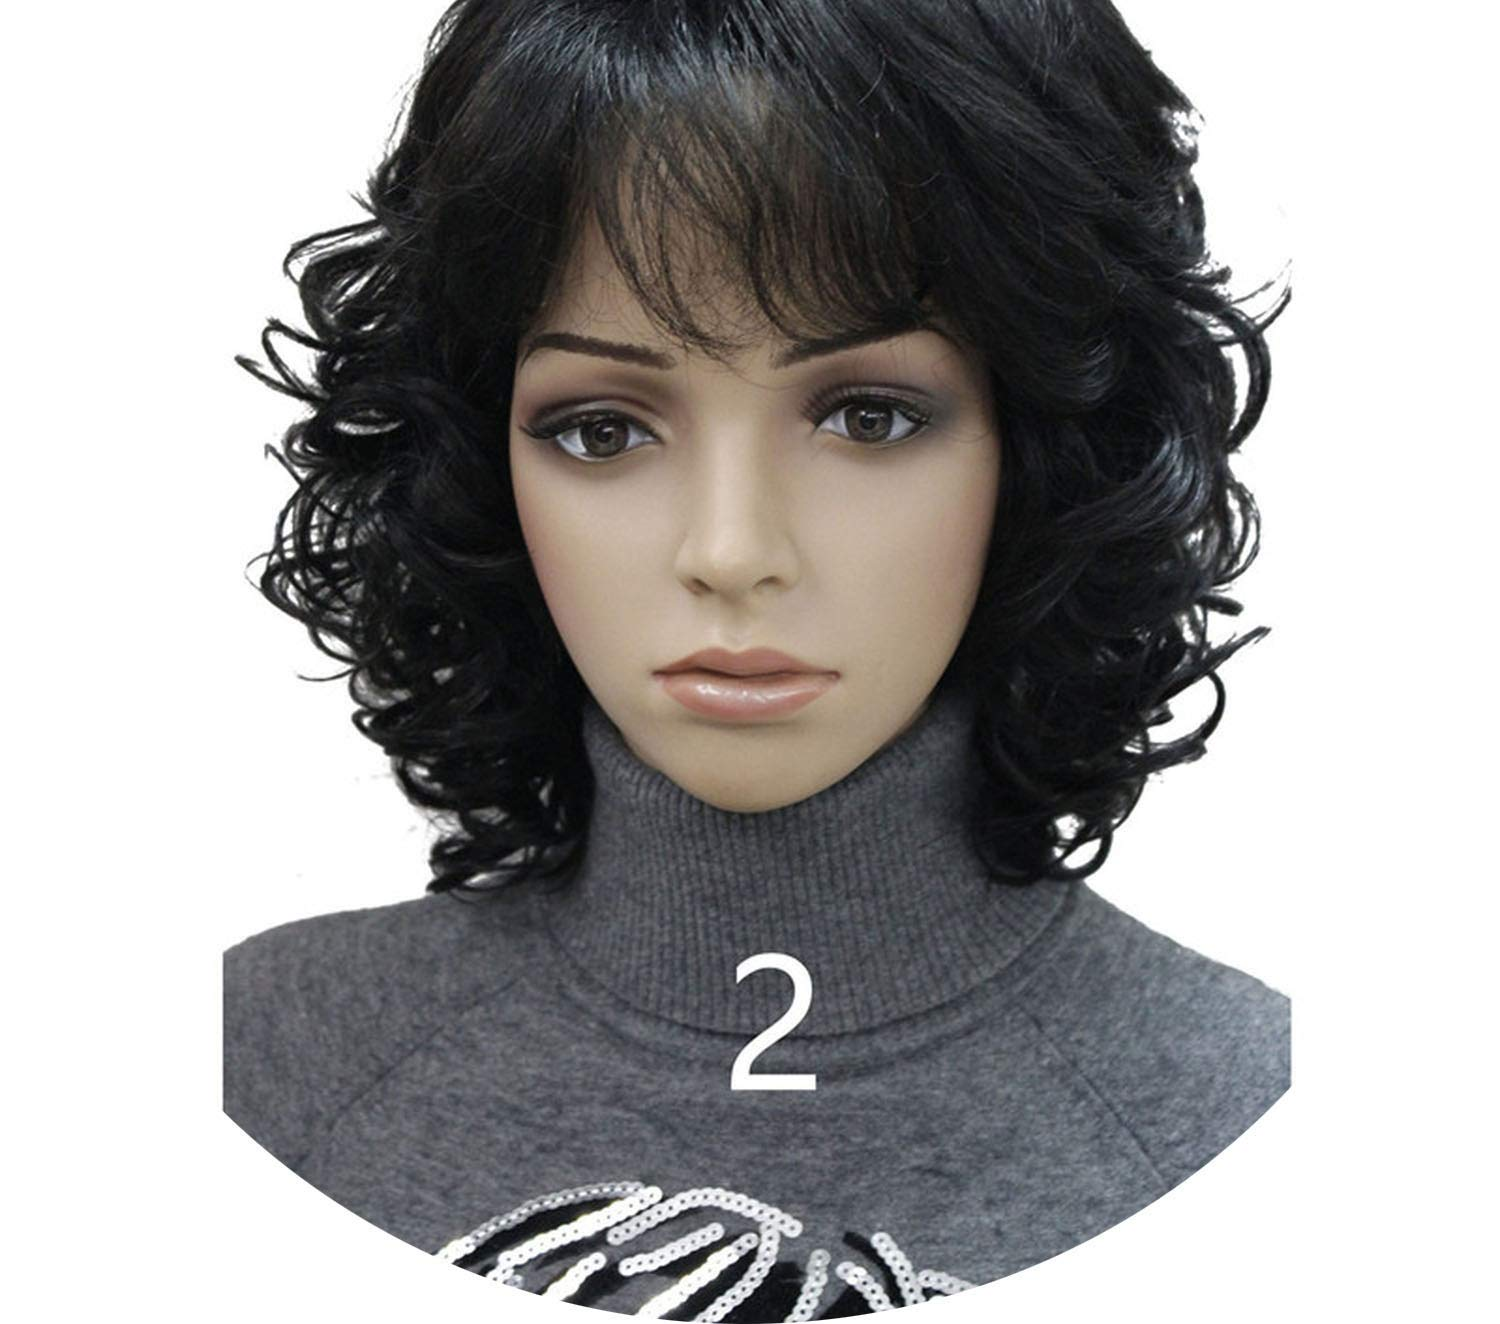 Amazon.com : Strong Beauty Medium Short Curly